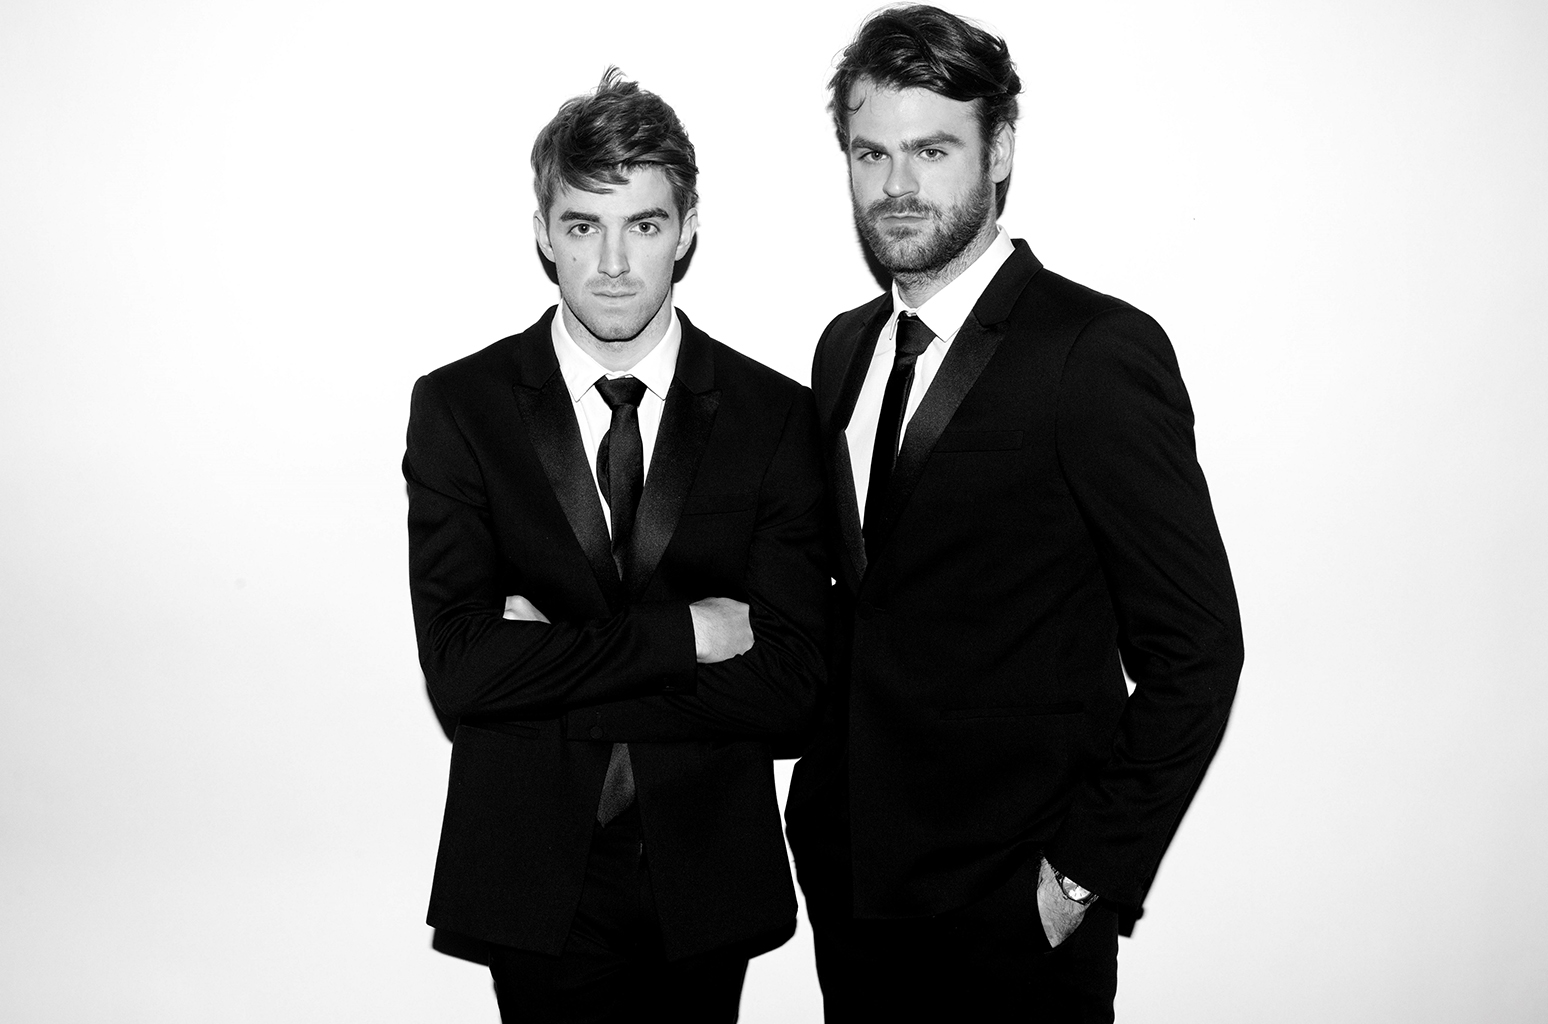 The Chainsmokers Sign Three-Year Exclusive Club Residency Deal with Wynn Nightlife in Las Vegas | Billboard